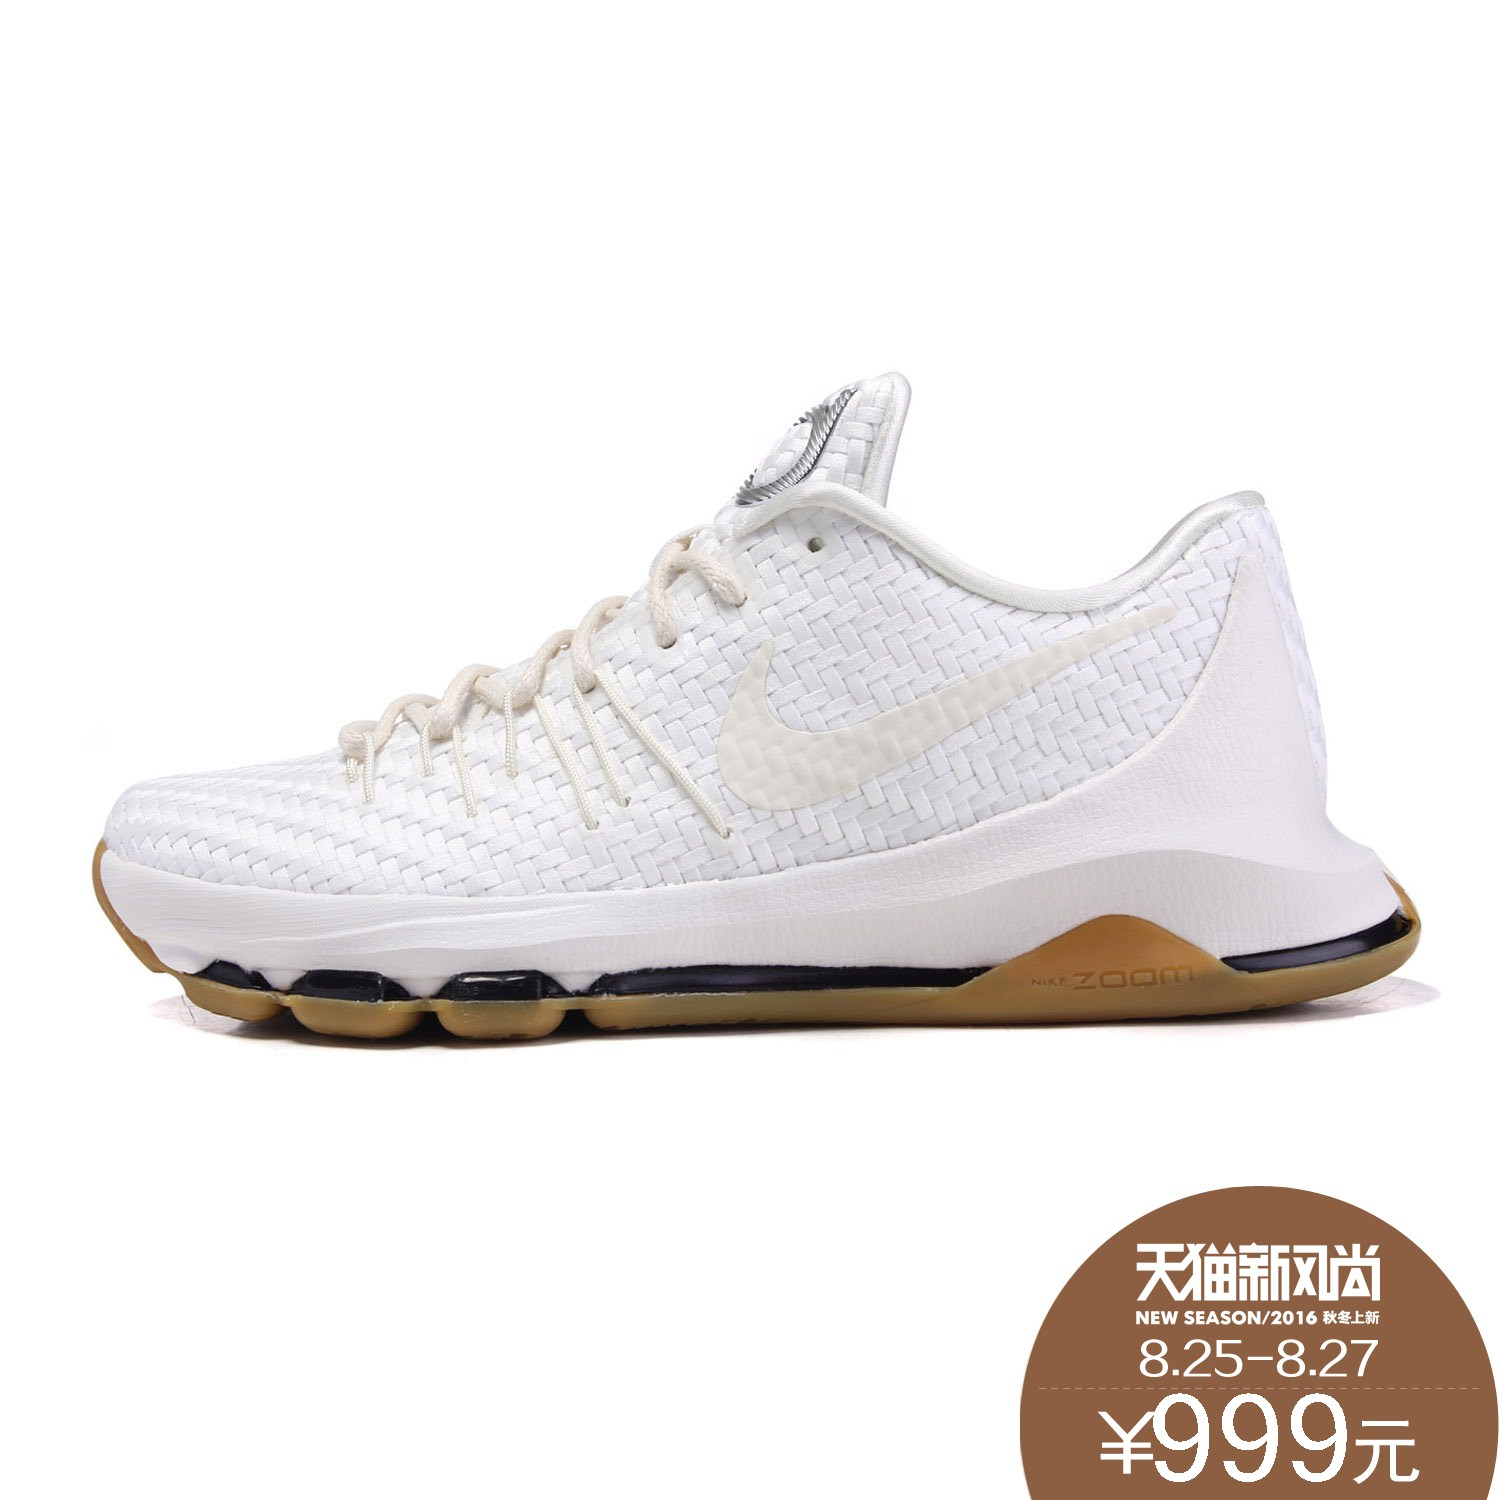 fc4d7acbc7d0 Get Quotations · Nike nike men s basketball shoes durant kd 8 to help low  damping sneakers 806393-100